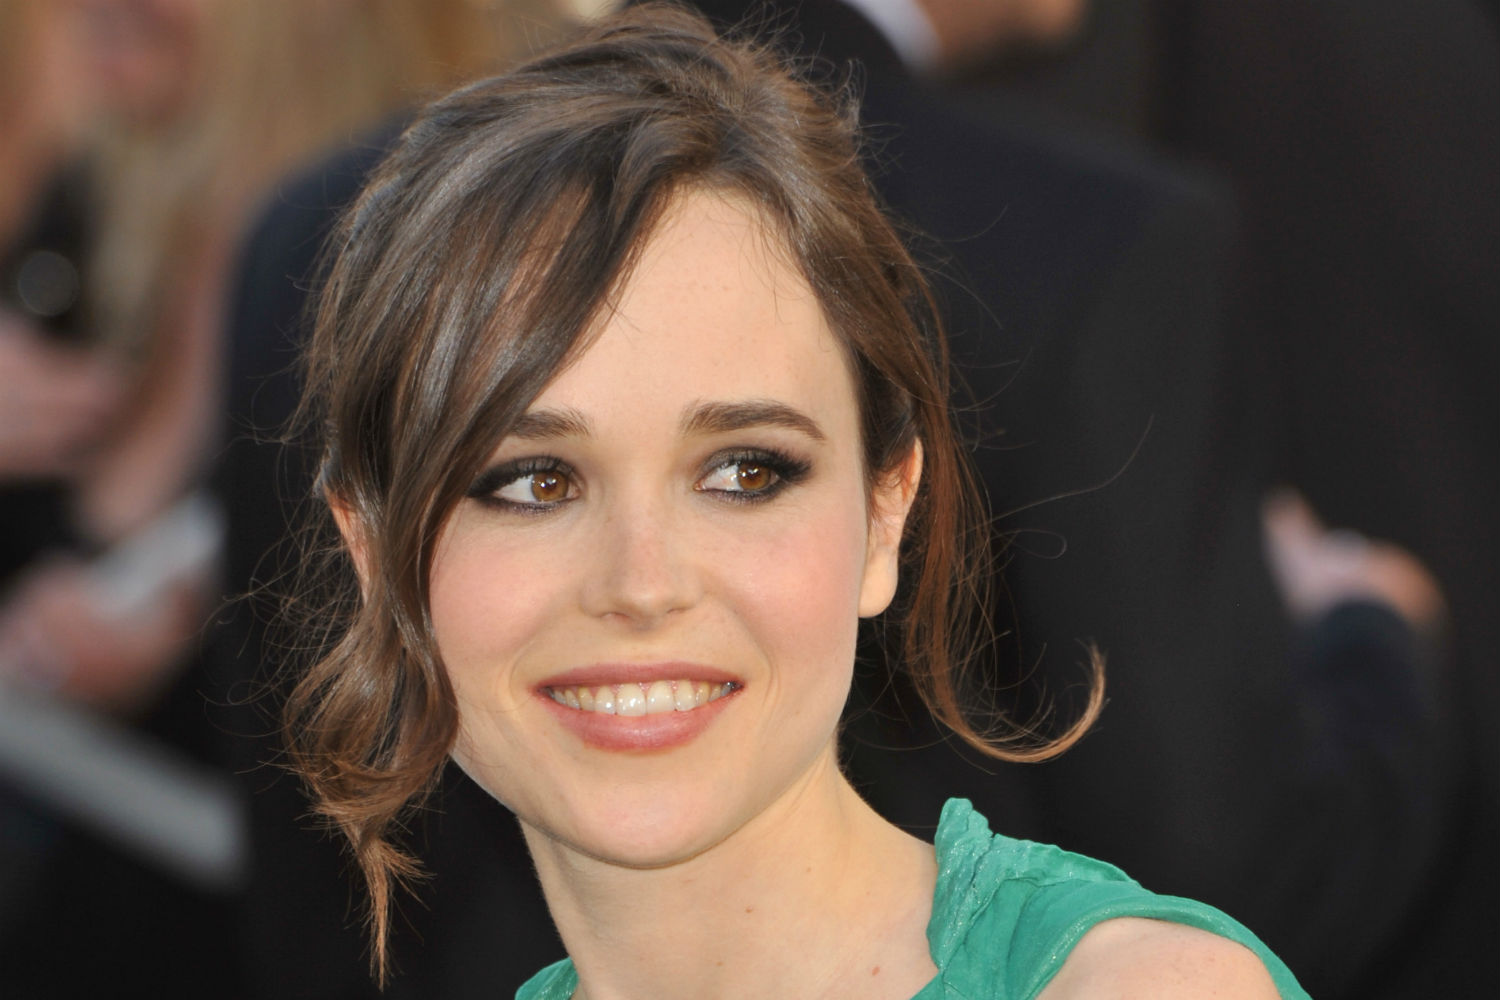 Ellen Page to star in Flatliners remake | Digital Trends Ellen Page